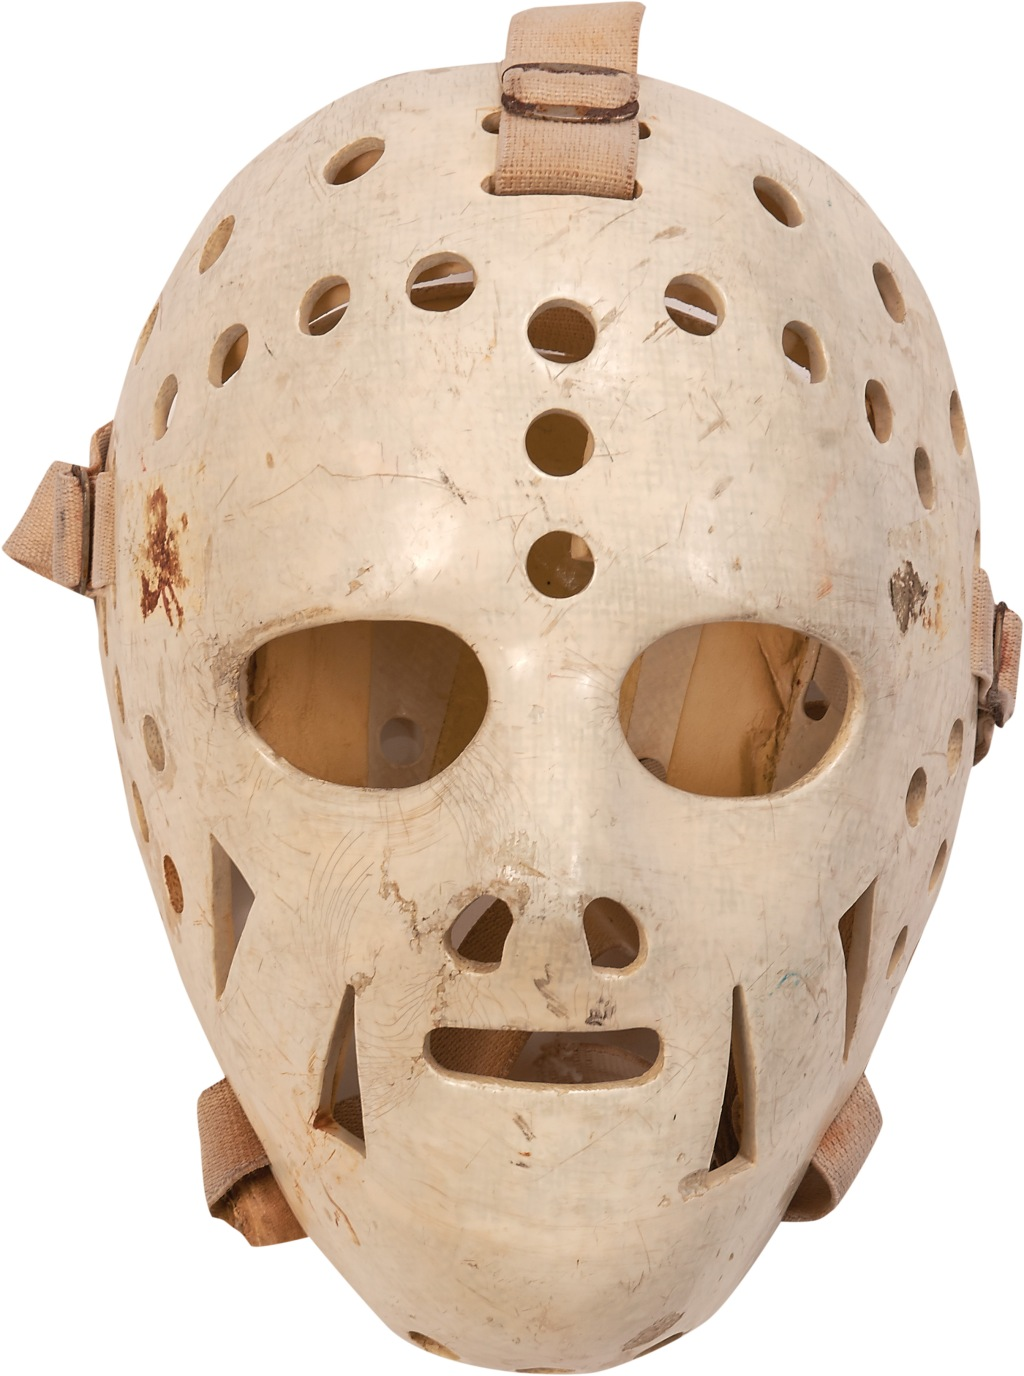 Jim Craig goalie mask